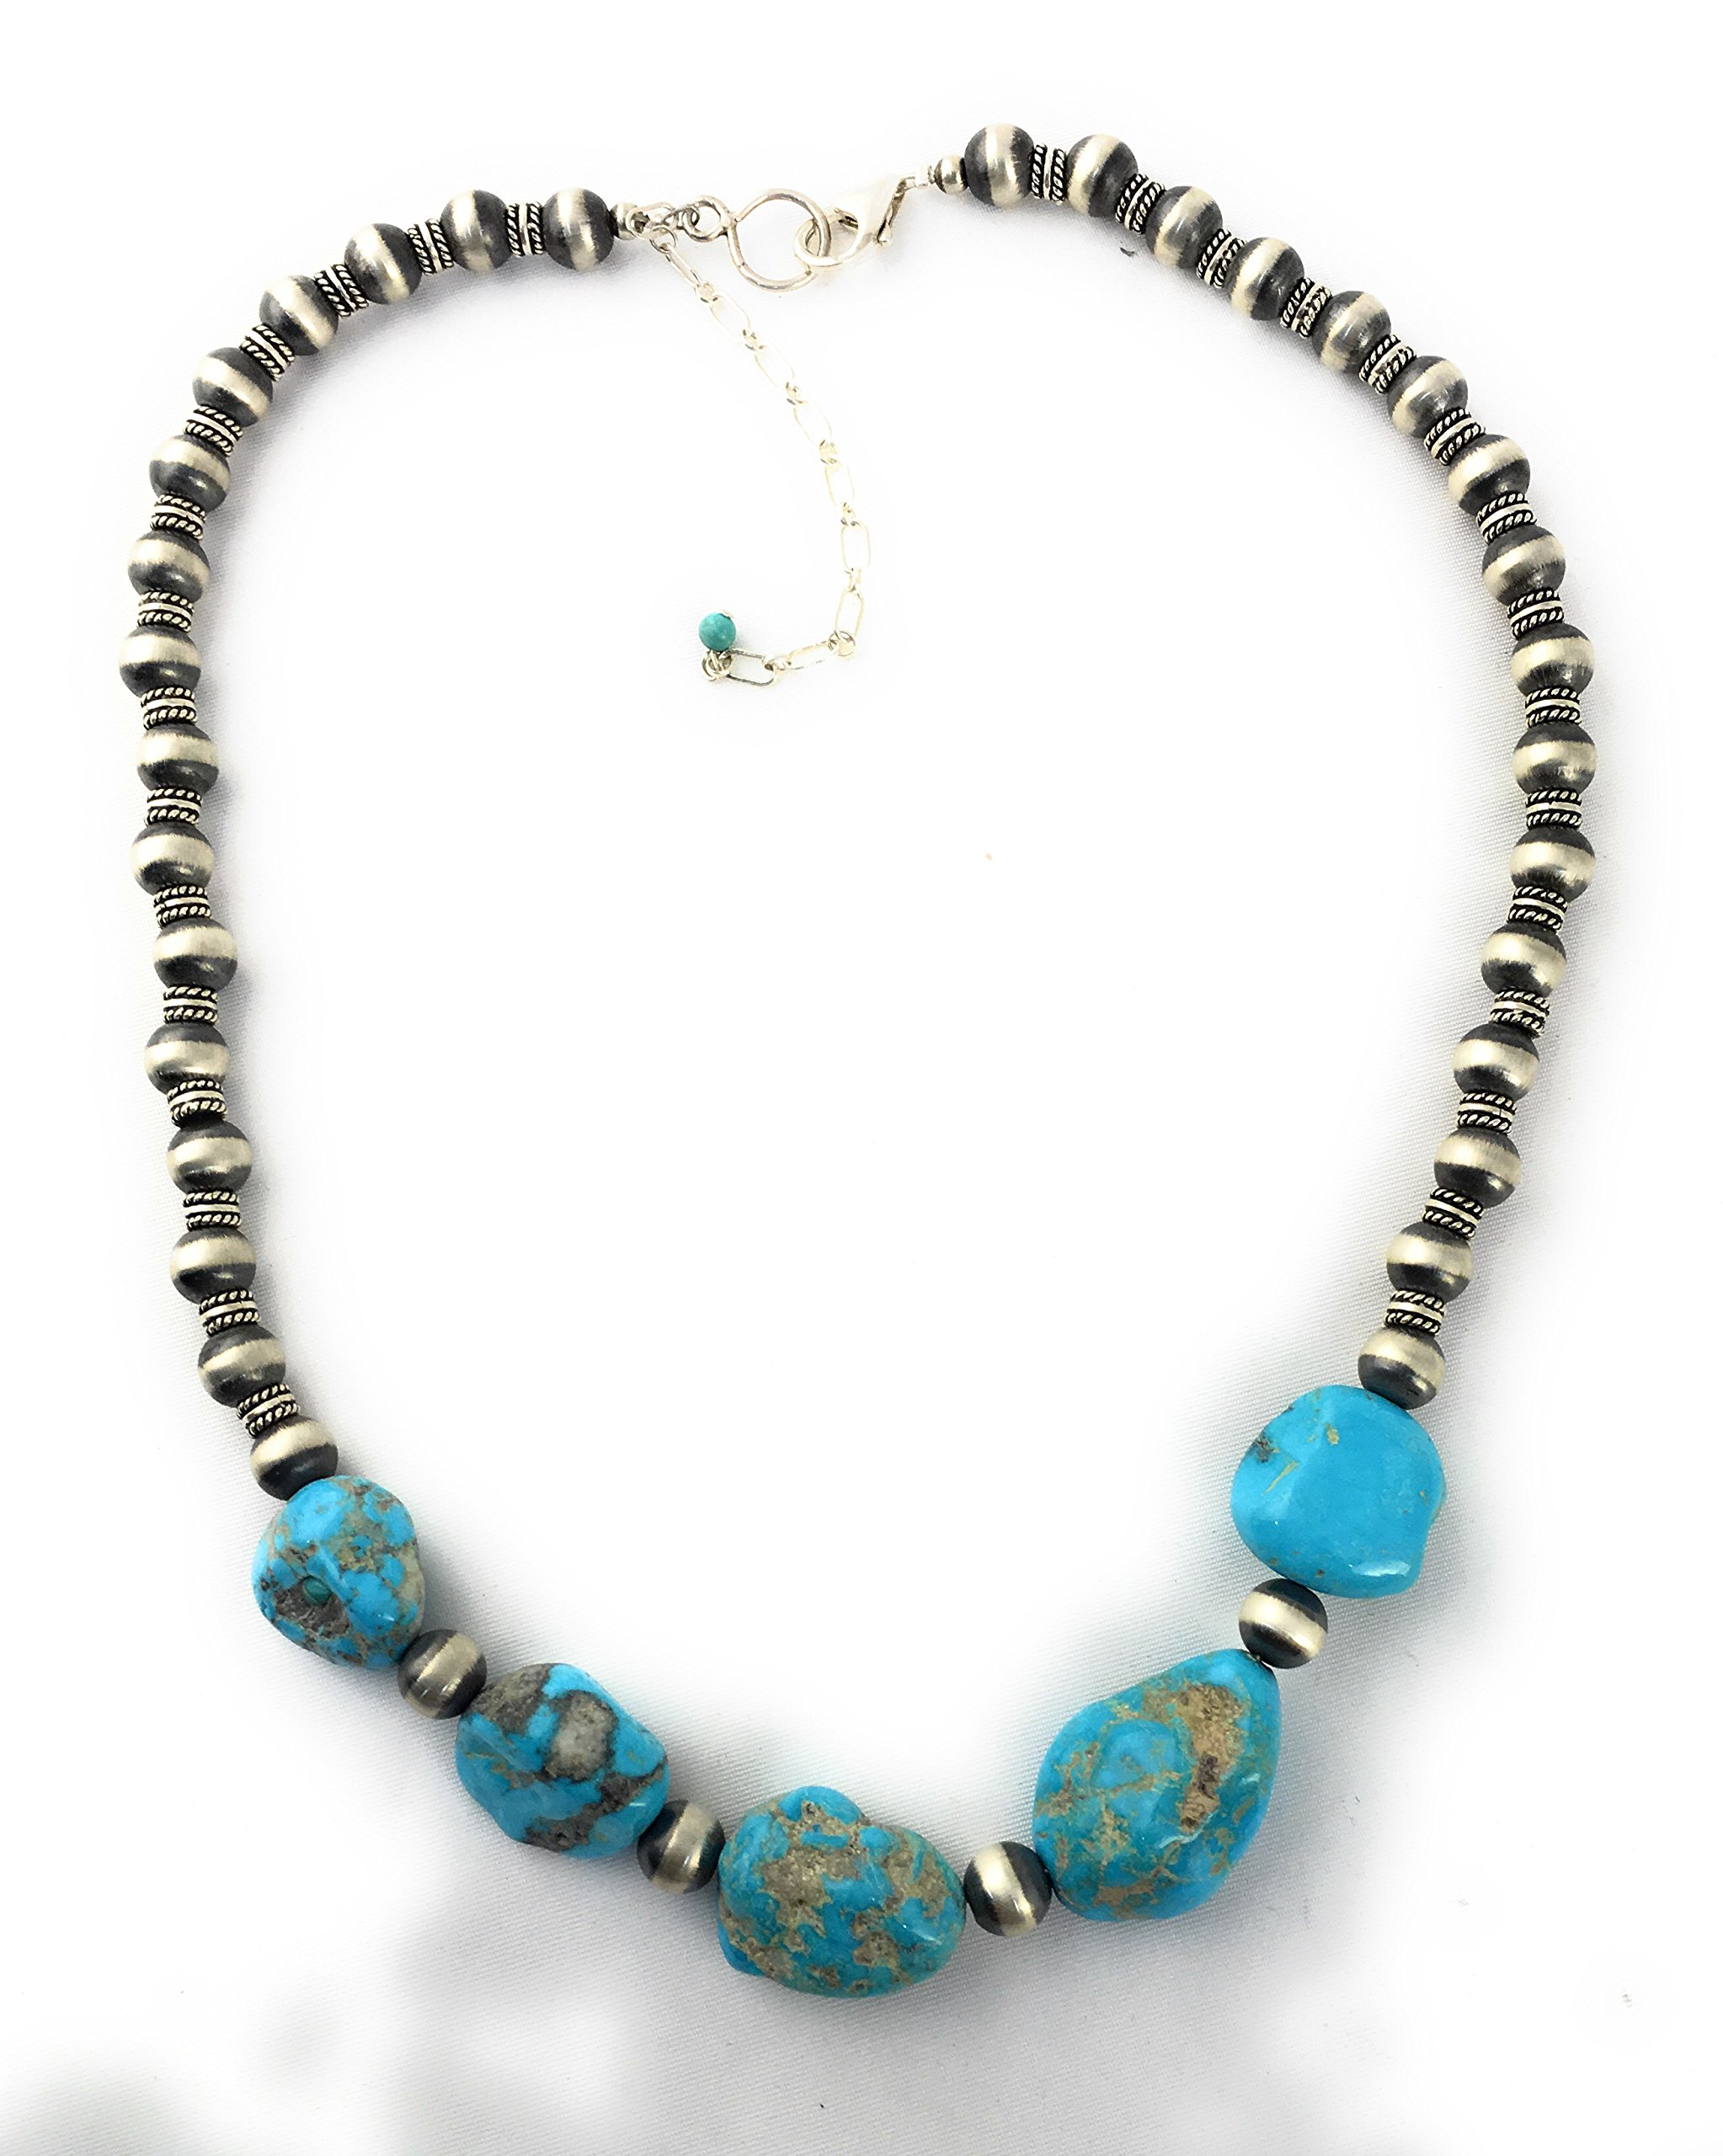 Masha Storewide Sale ! Sterling Silver Necklace By Sleeping Beauty Turquoise Nugget, Made in USA - Exclusive Southwestern Handmade Jewelry, Gift